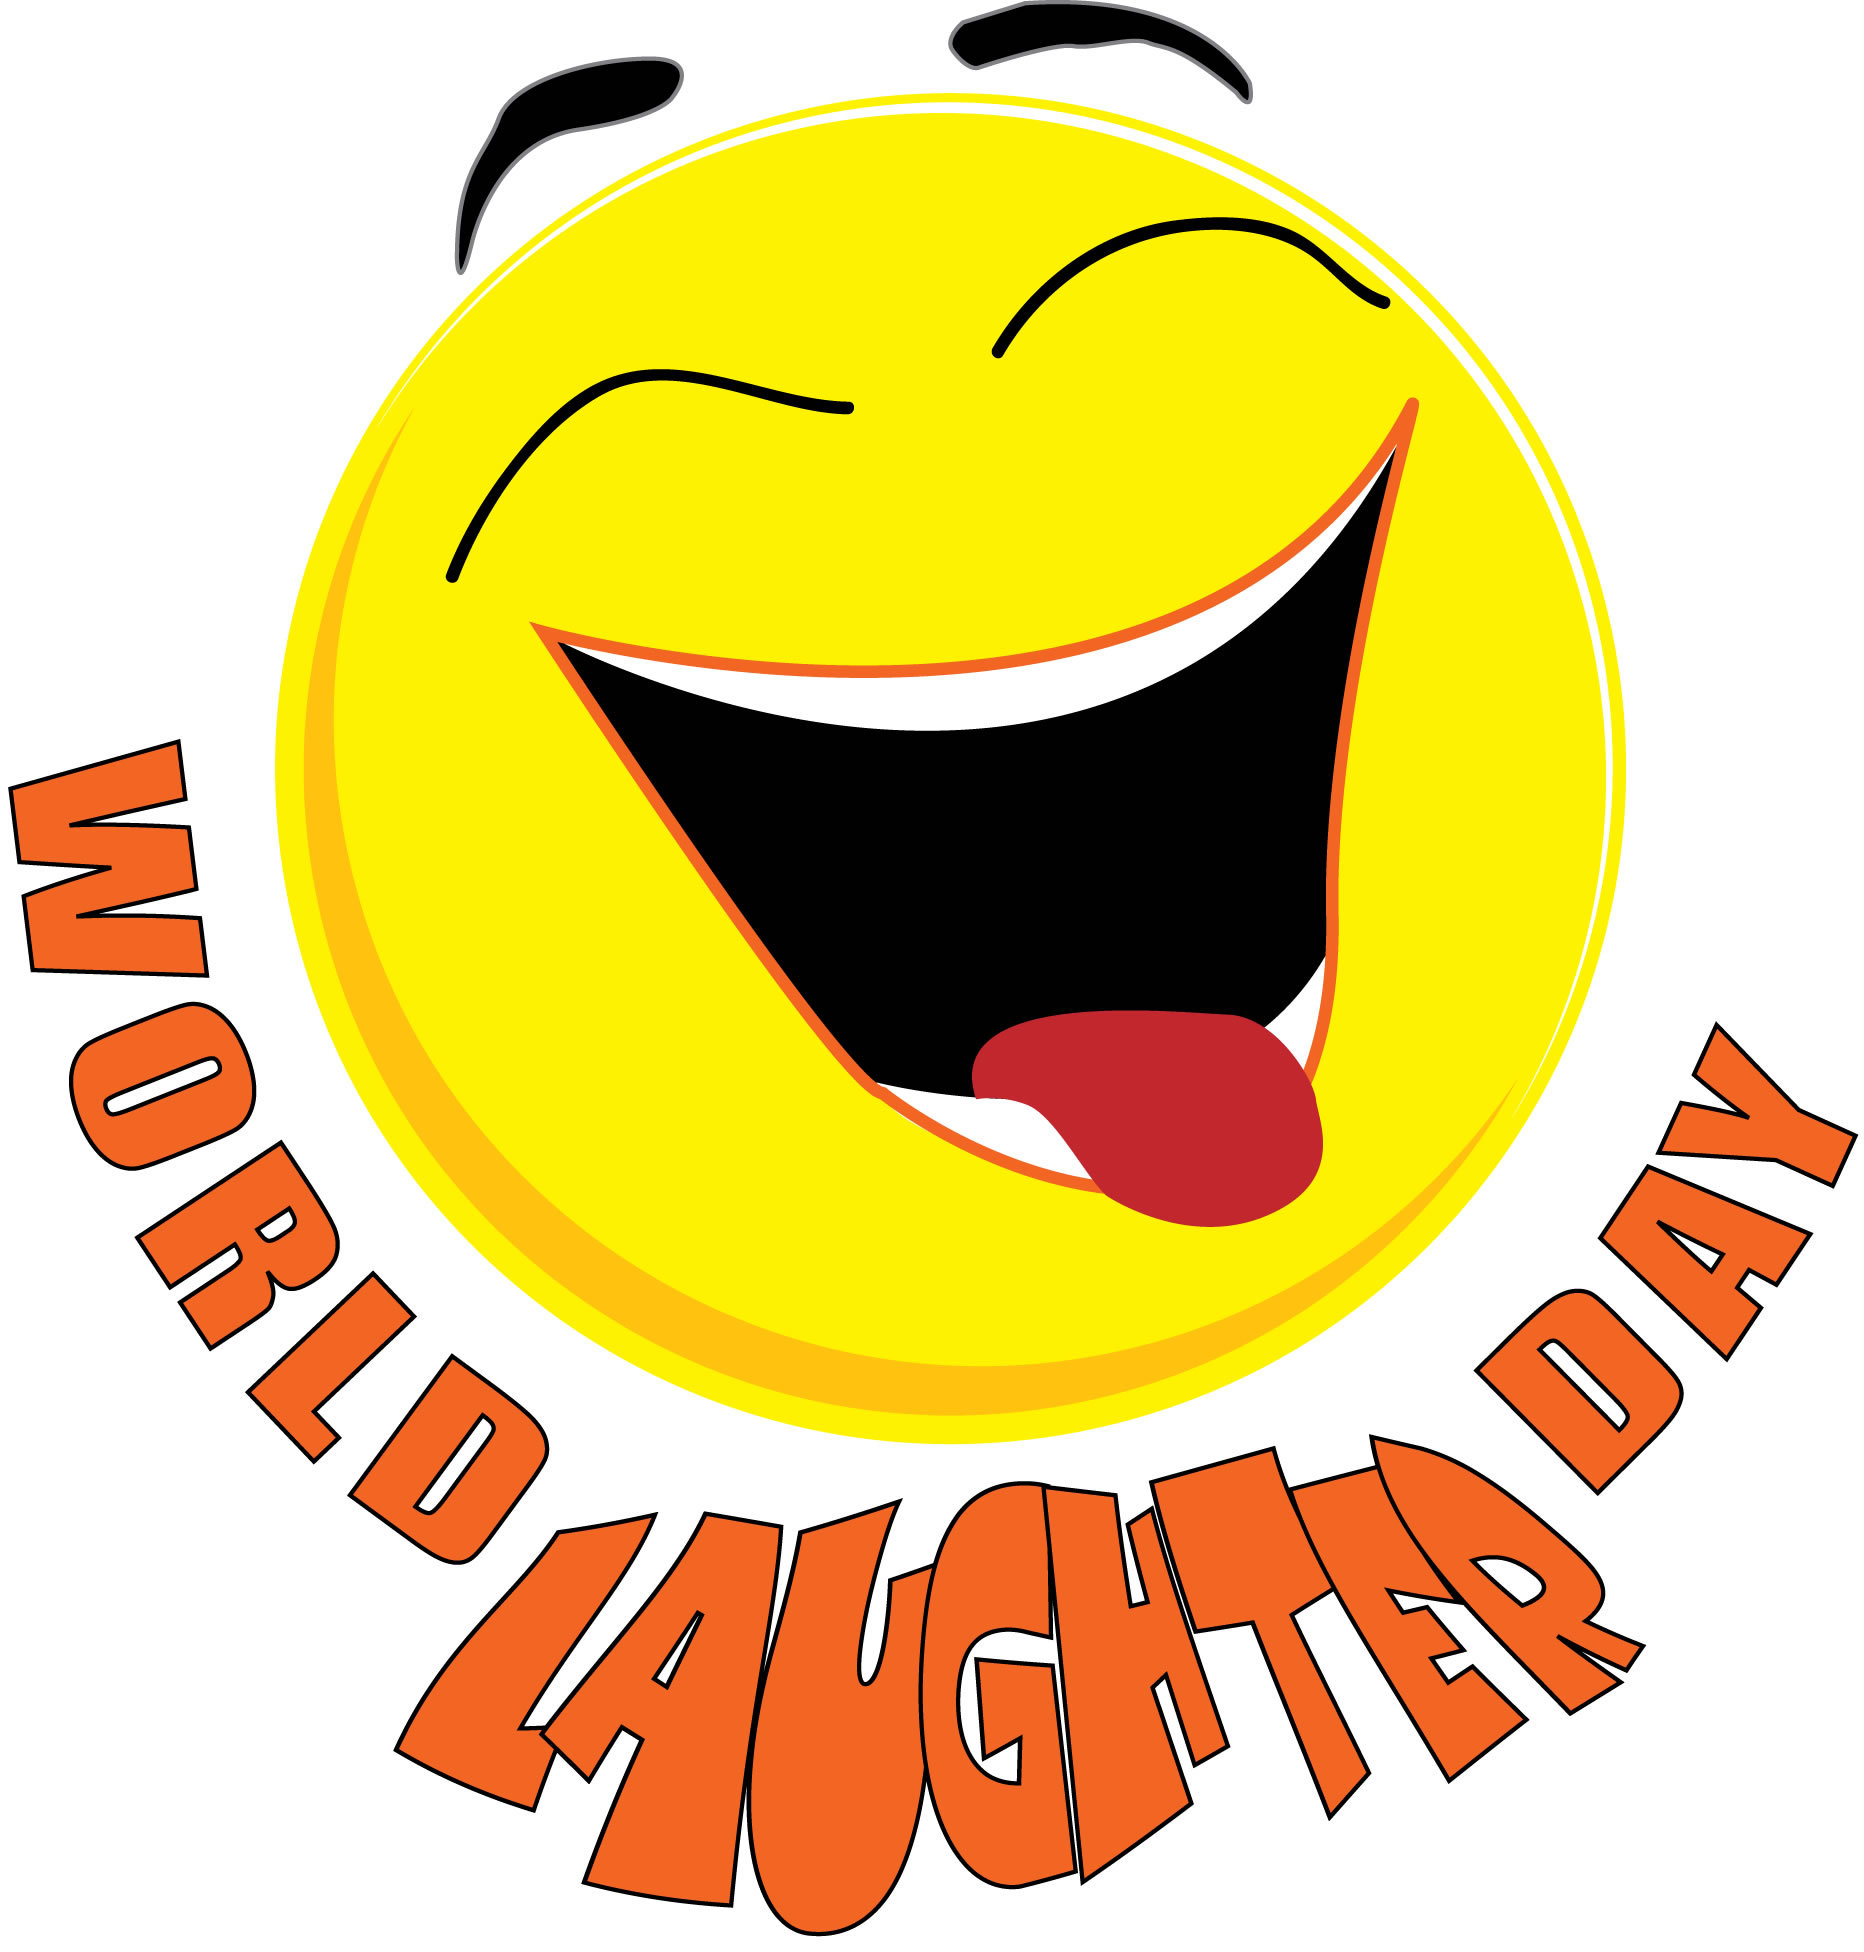 World Laughter Day Wallpaper 2020